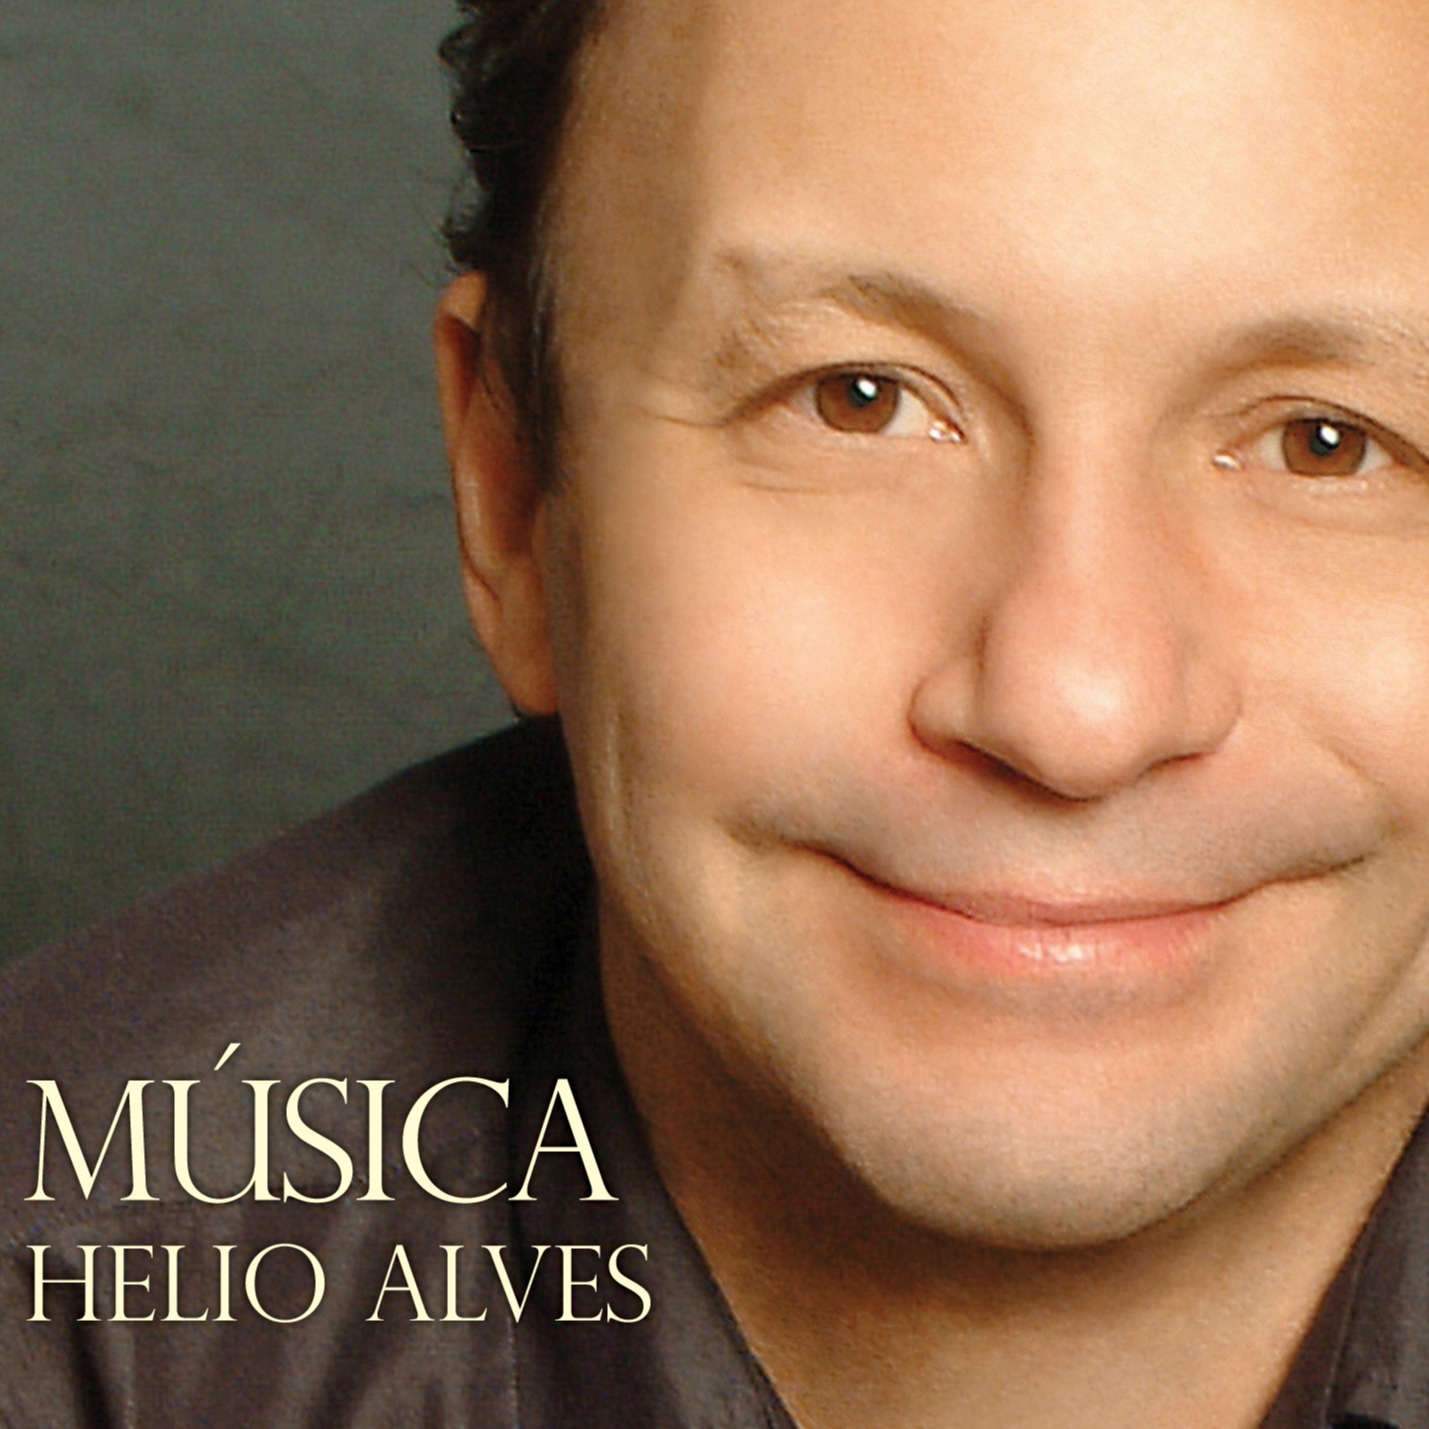 Jazz Legacy Productions MUSICA Helio Alves Link Thumbnail | Linktree